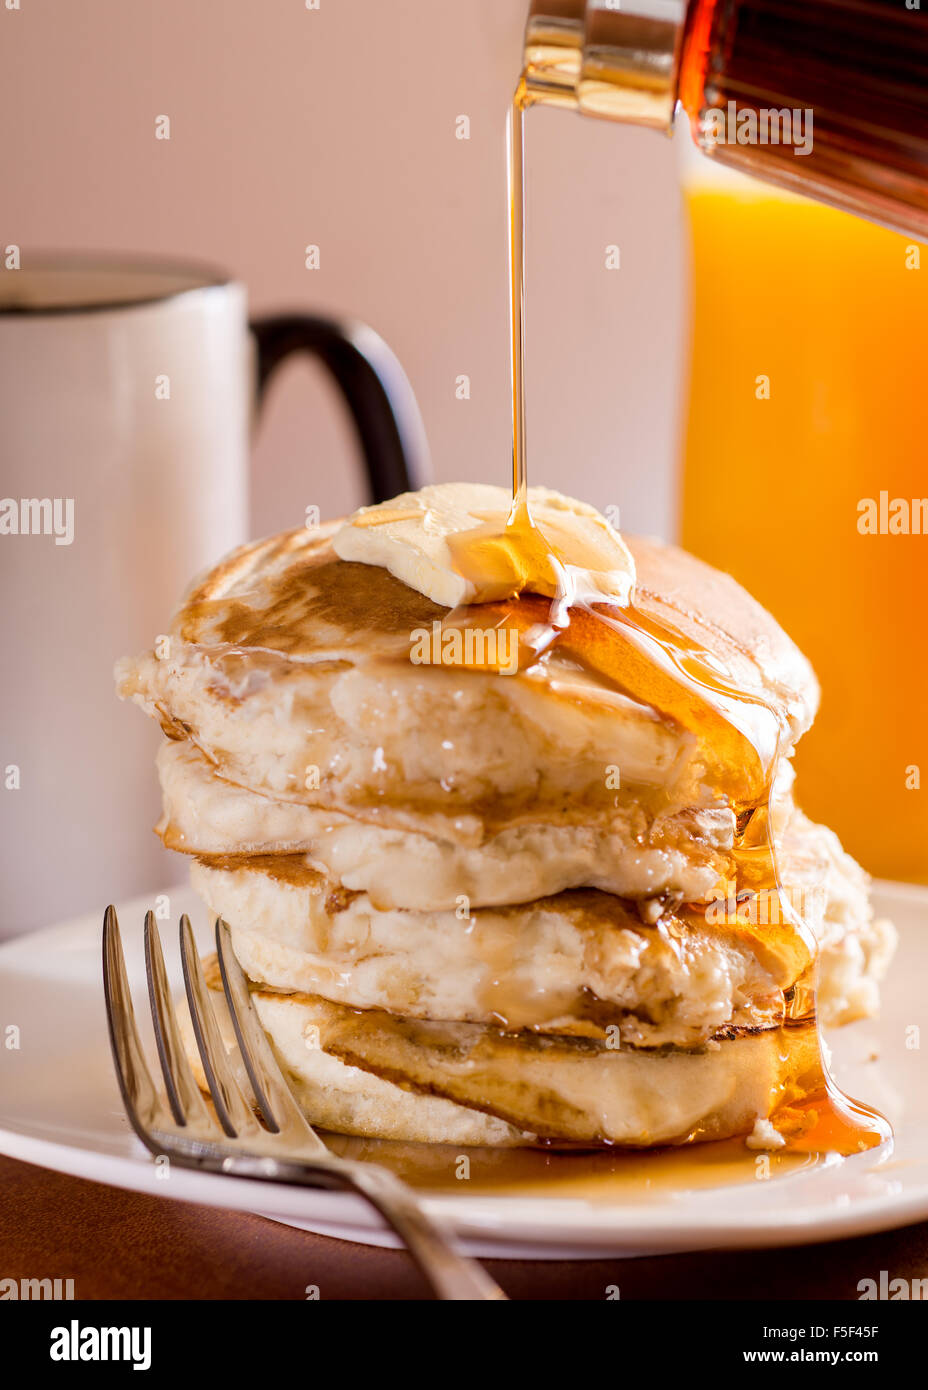 A stack of pancakes being covered in maple syrup - Stock Image